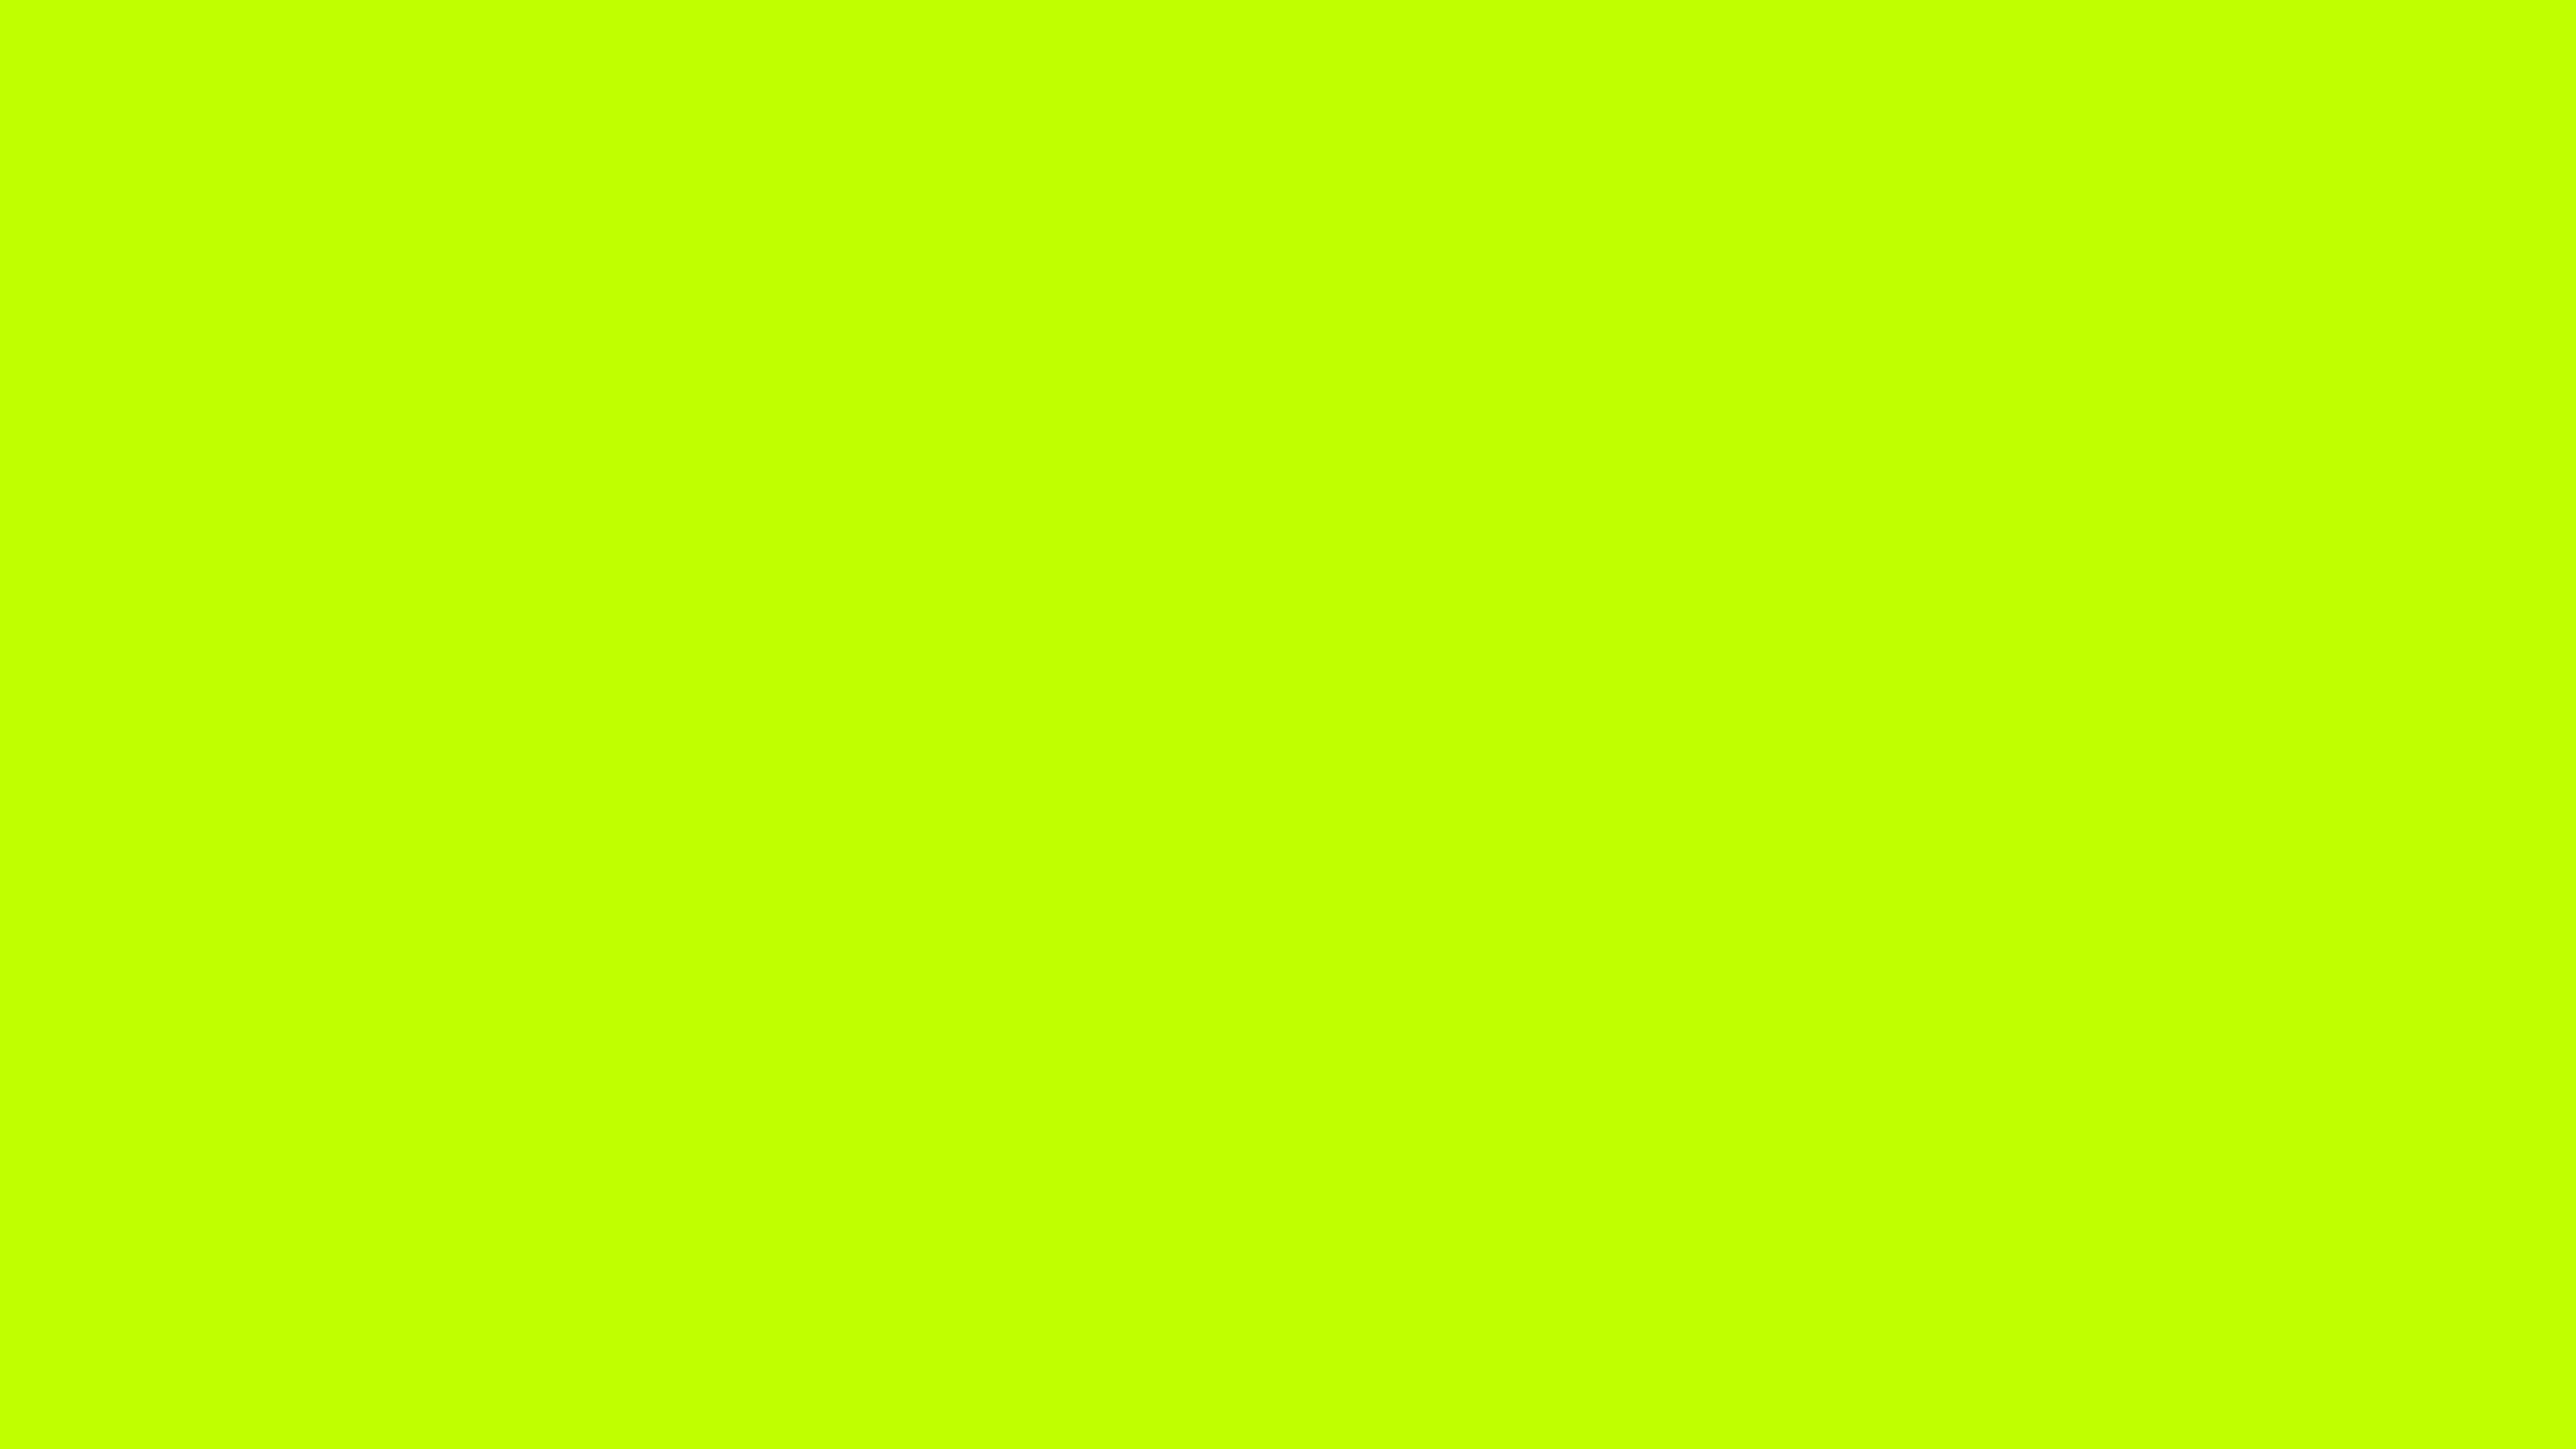 3840x2160 Bitter Lime Solid Color Background